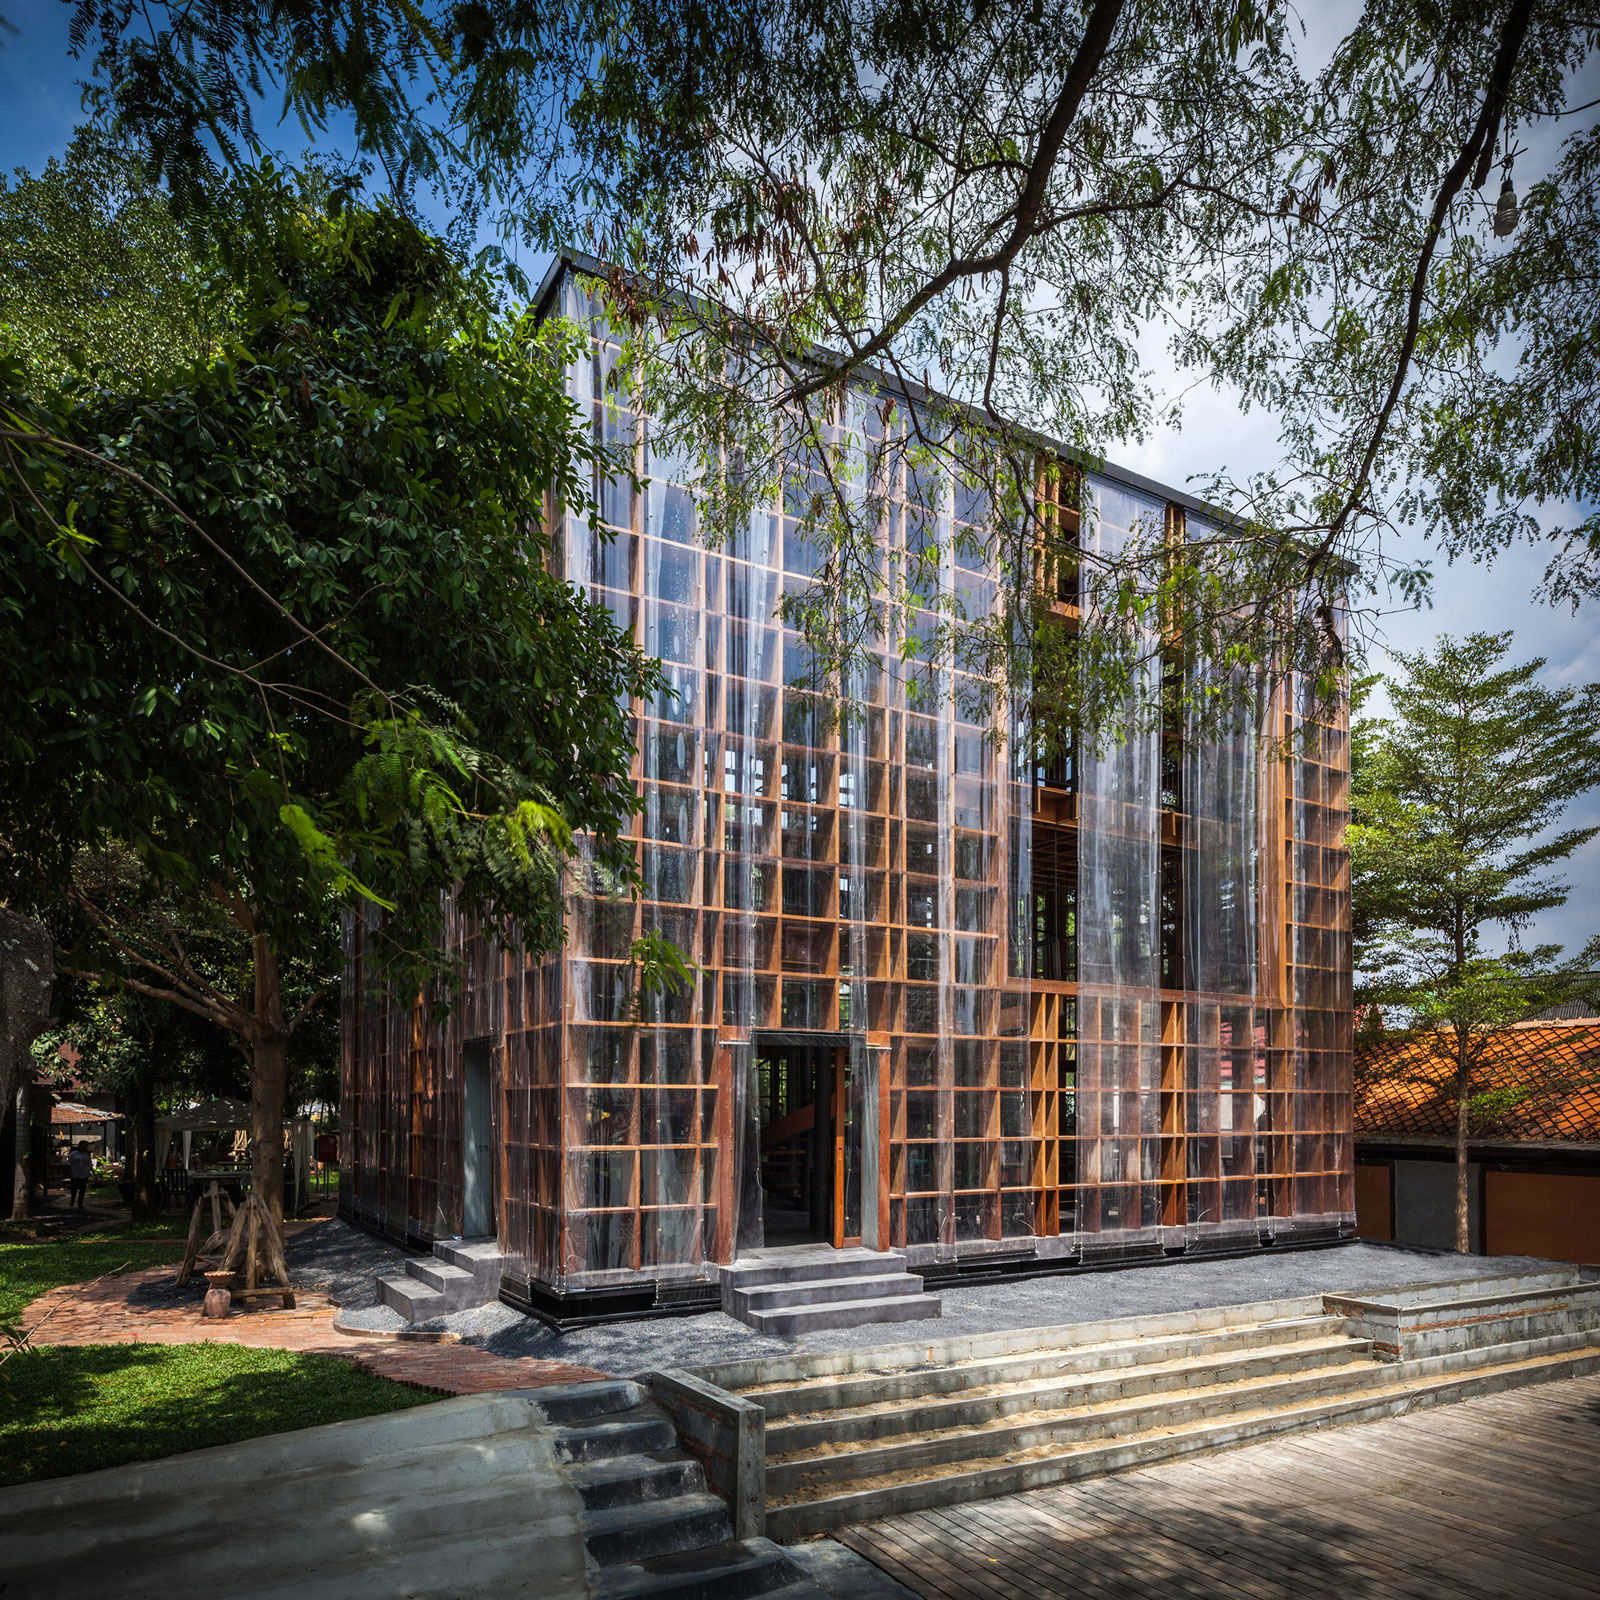 wine-bangkok-project-studio-architecture-public-leisure-thailand-_dezeen_sq-a